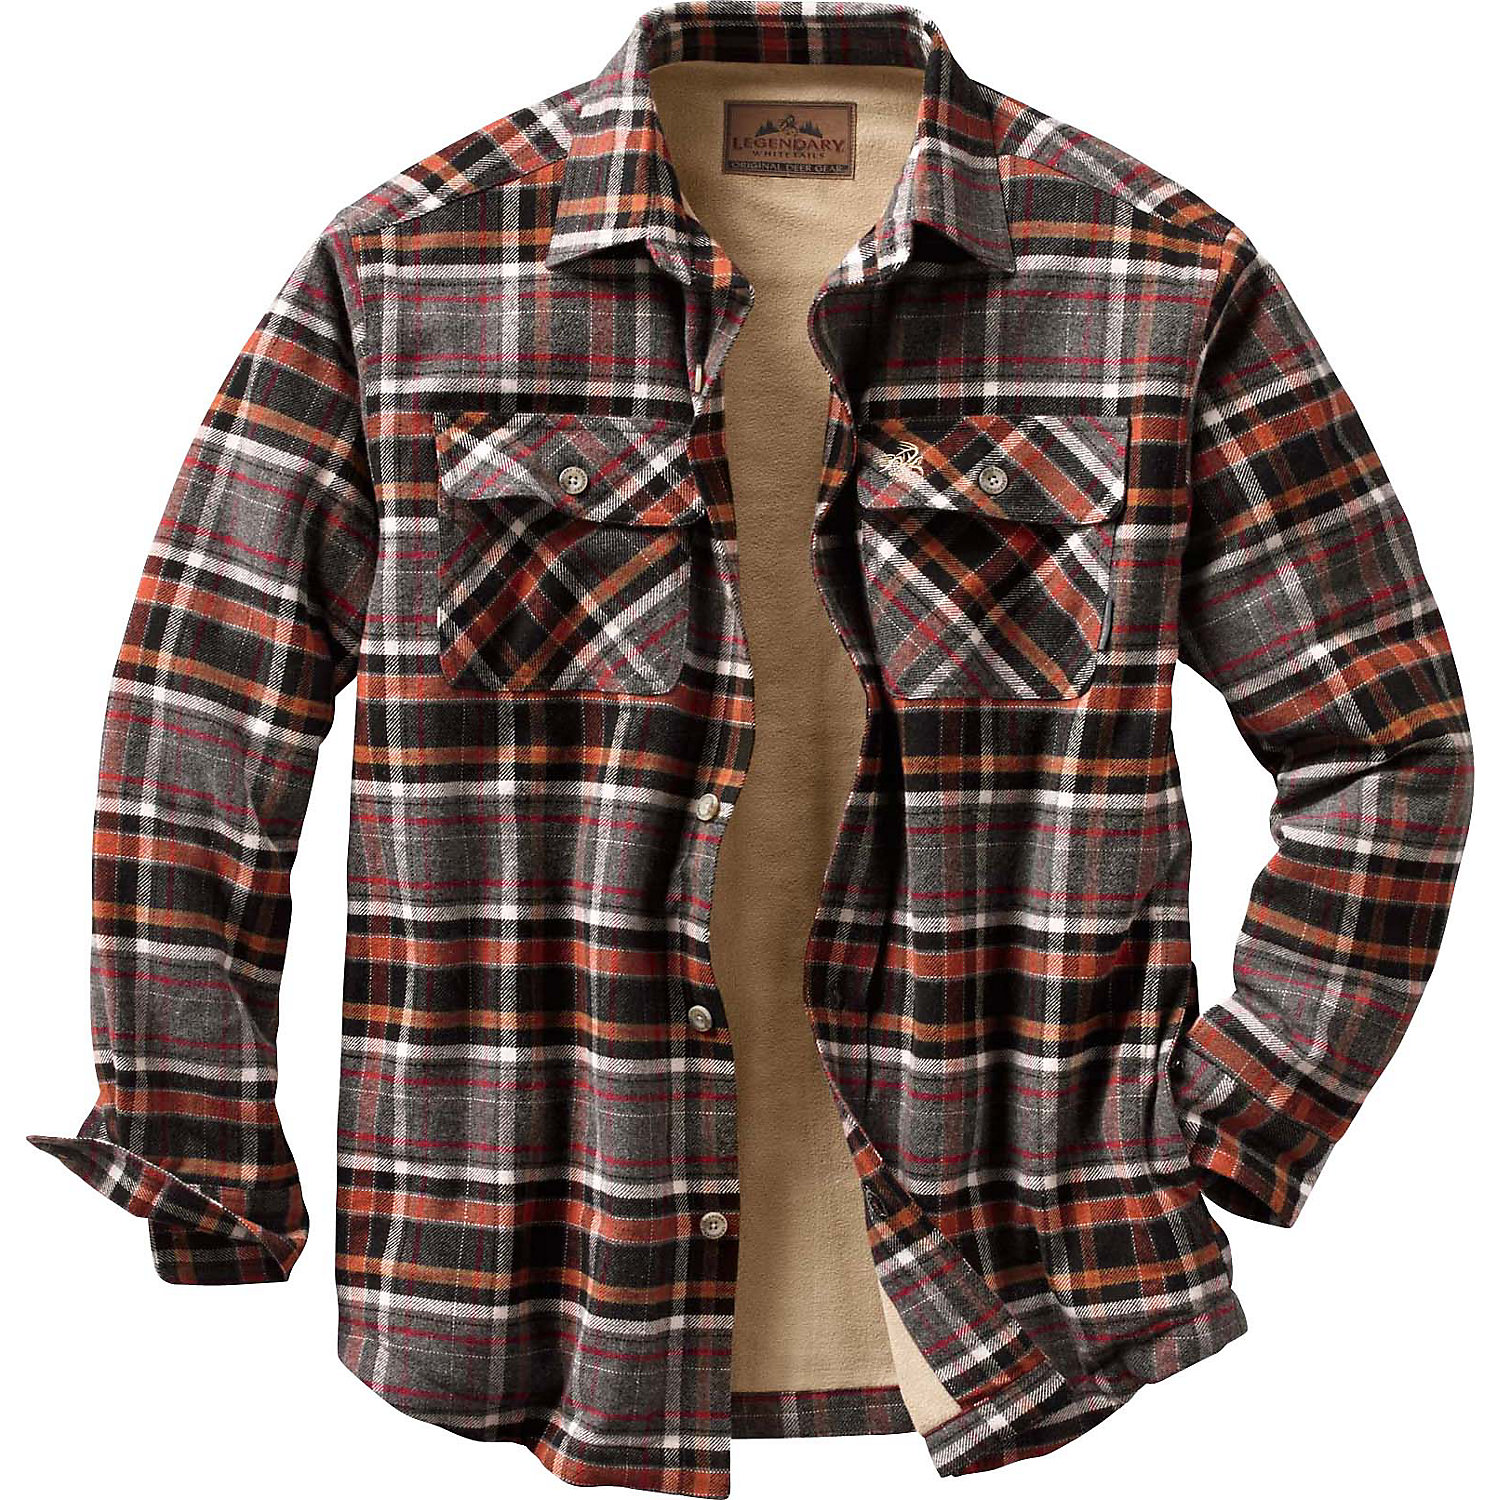 Men's Flannel, Chamois and Lined Shirts Shop 10mins.ml for the unbeatable comfort of our Men's flannel- and fleece-lined shirts. Our flannel shirts are made from high-quality Portuguese flannel, expertly brushed for softness.